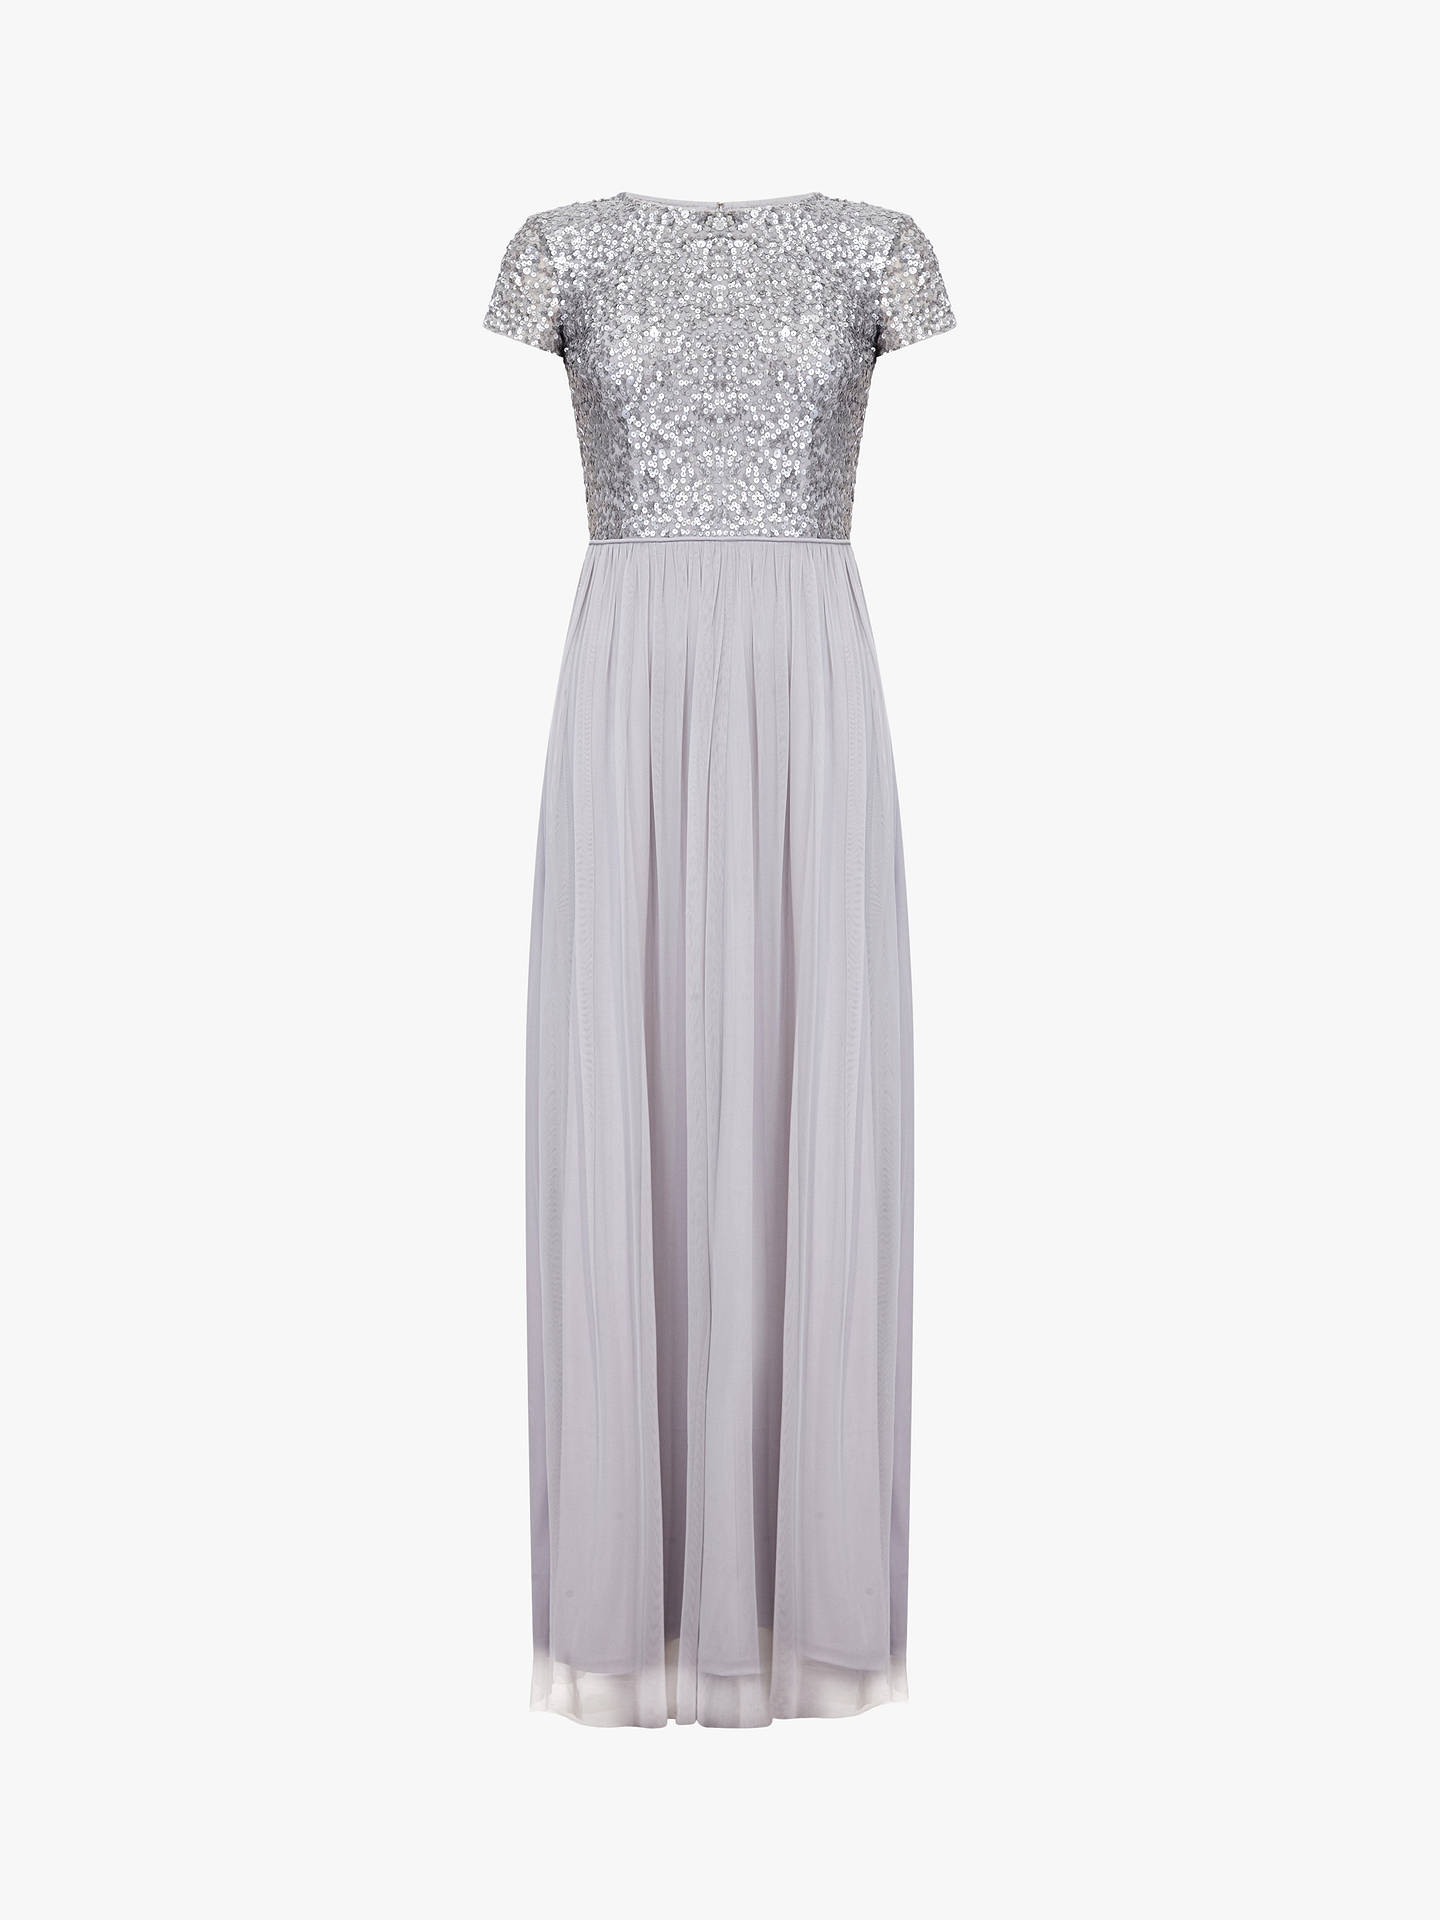 0ca72d20e9 Buy Adrianna Papell Sequin Tulle Maxi Dress, Bridal Silver, 14 Online at  johnlewis.